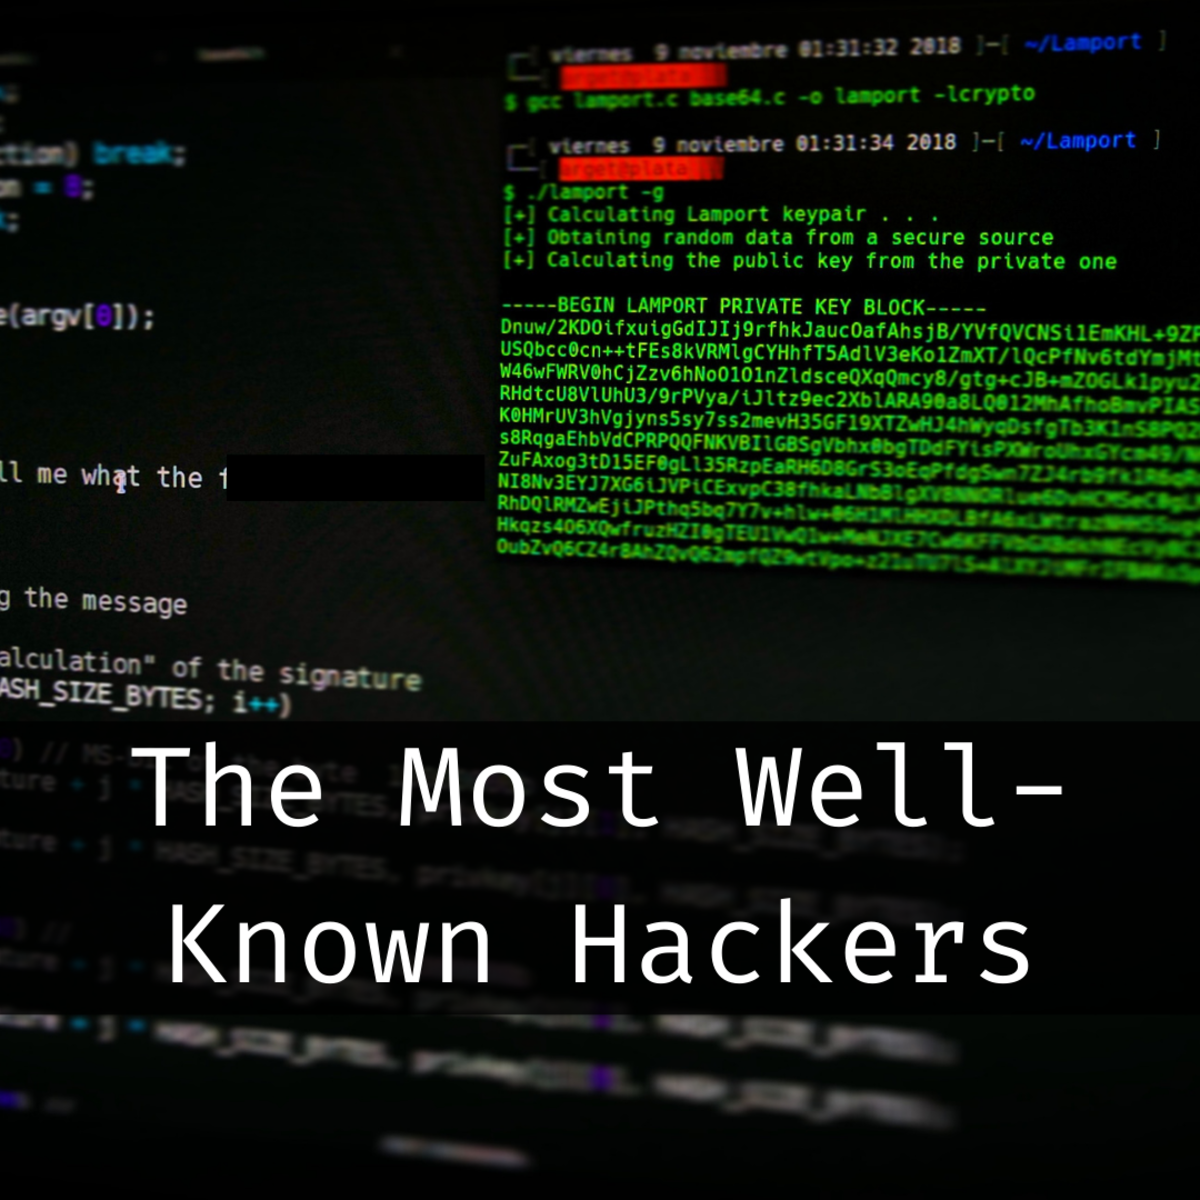 Learn about famous hacking collectives from around the world.